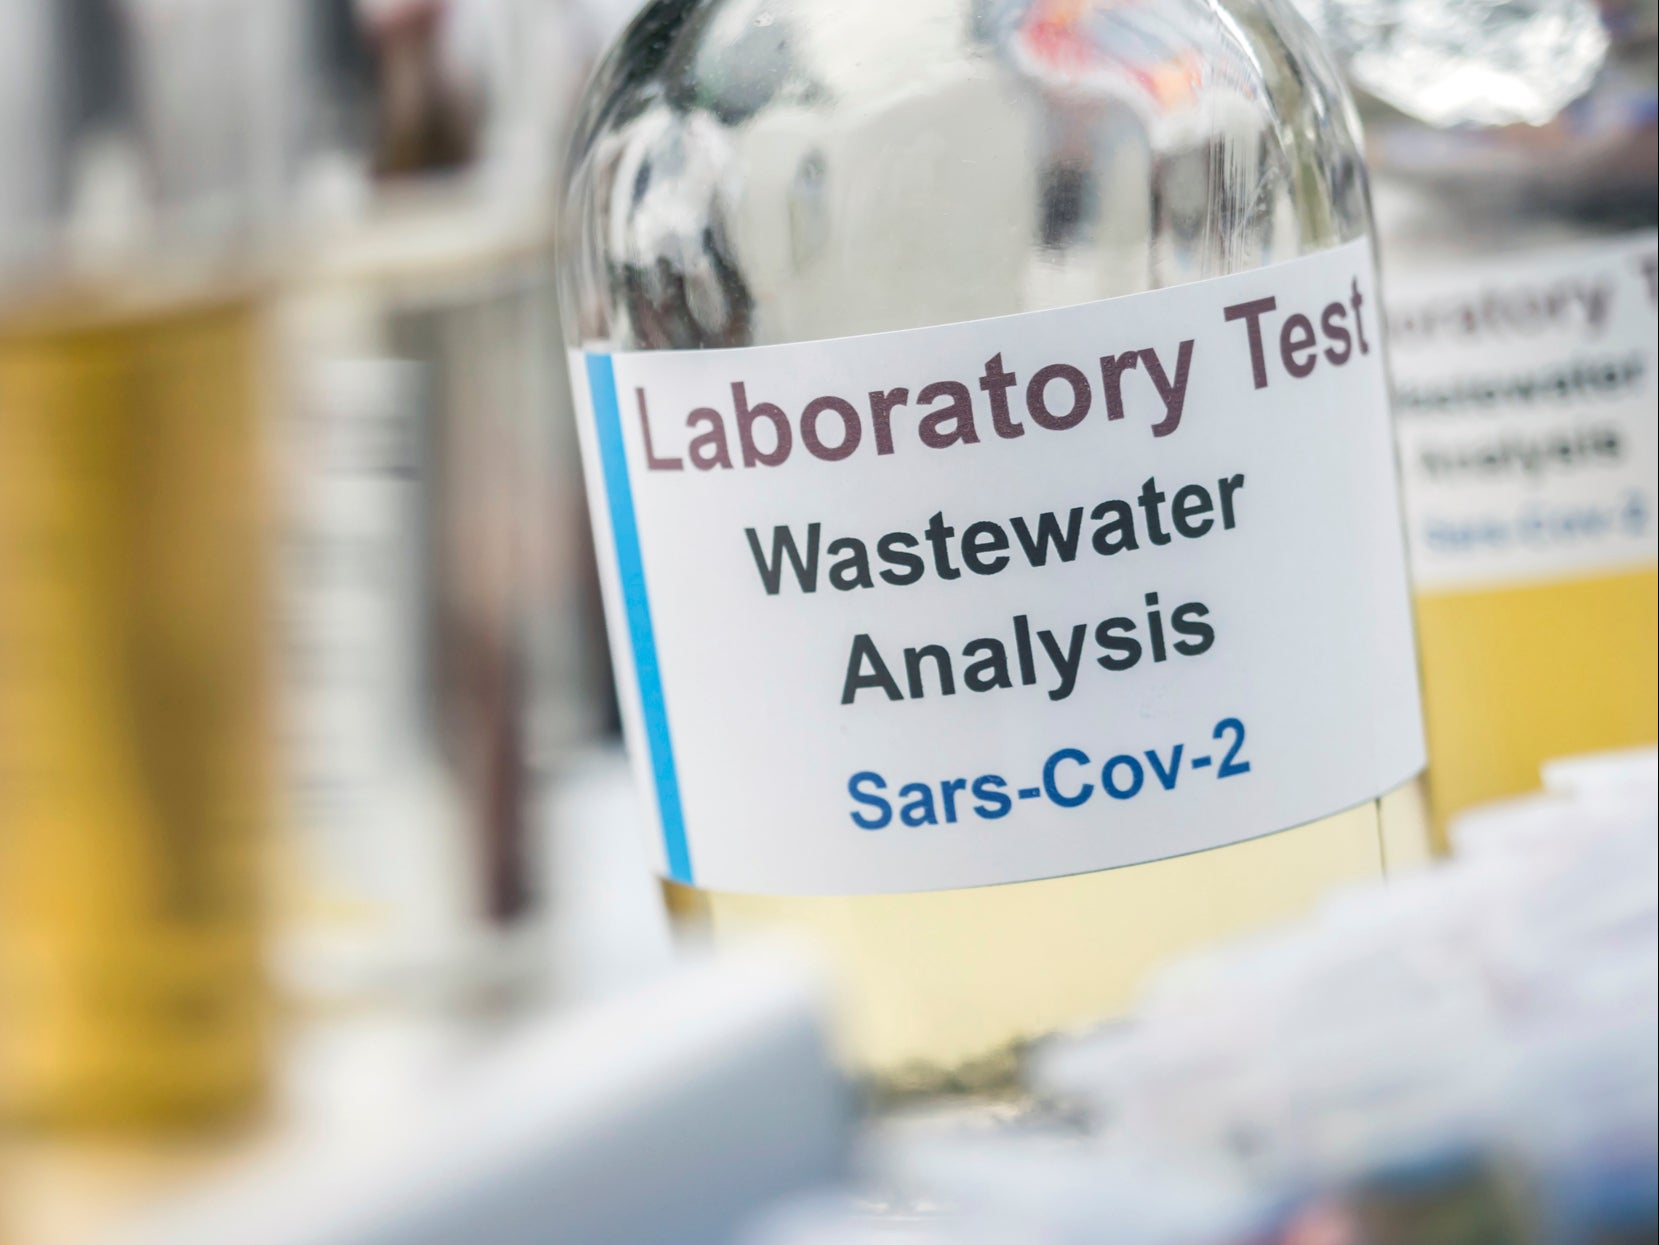 Sewage analysis could provide early warning system for new coronavirus variants, research shows